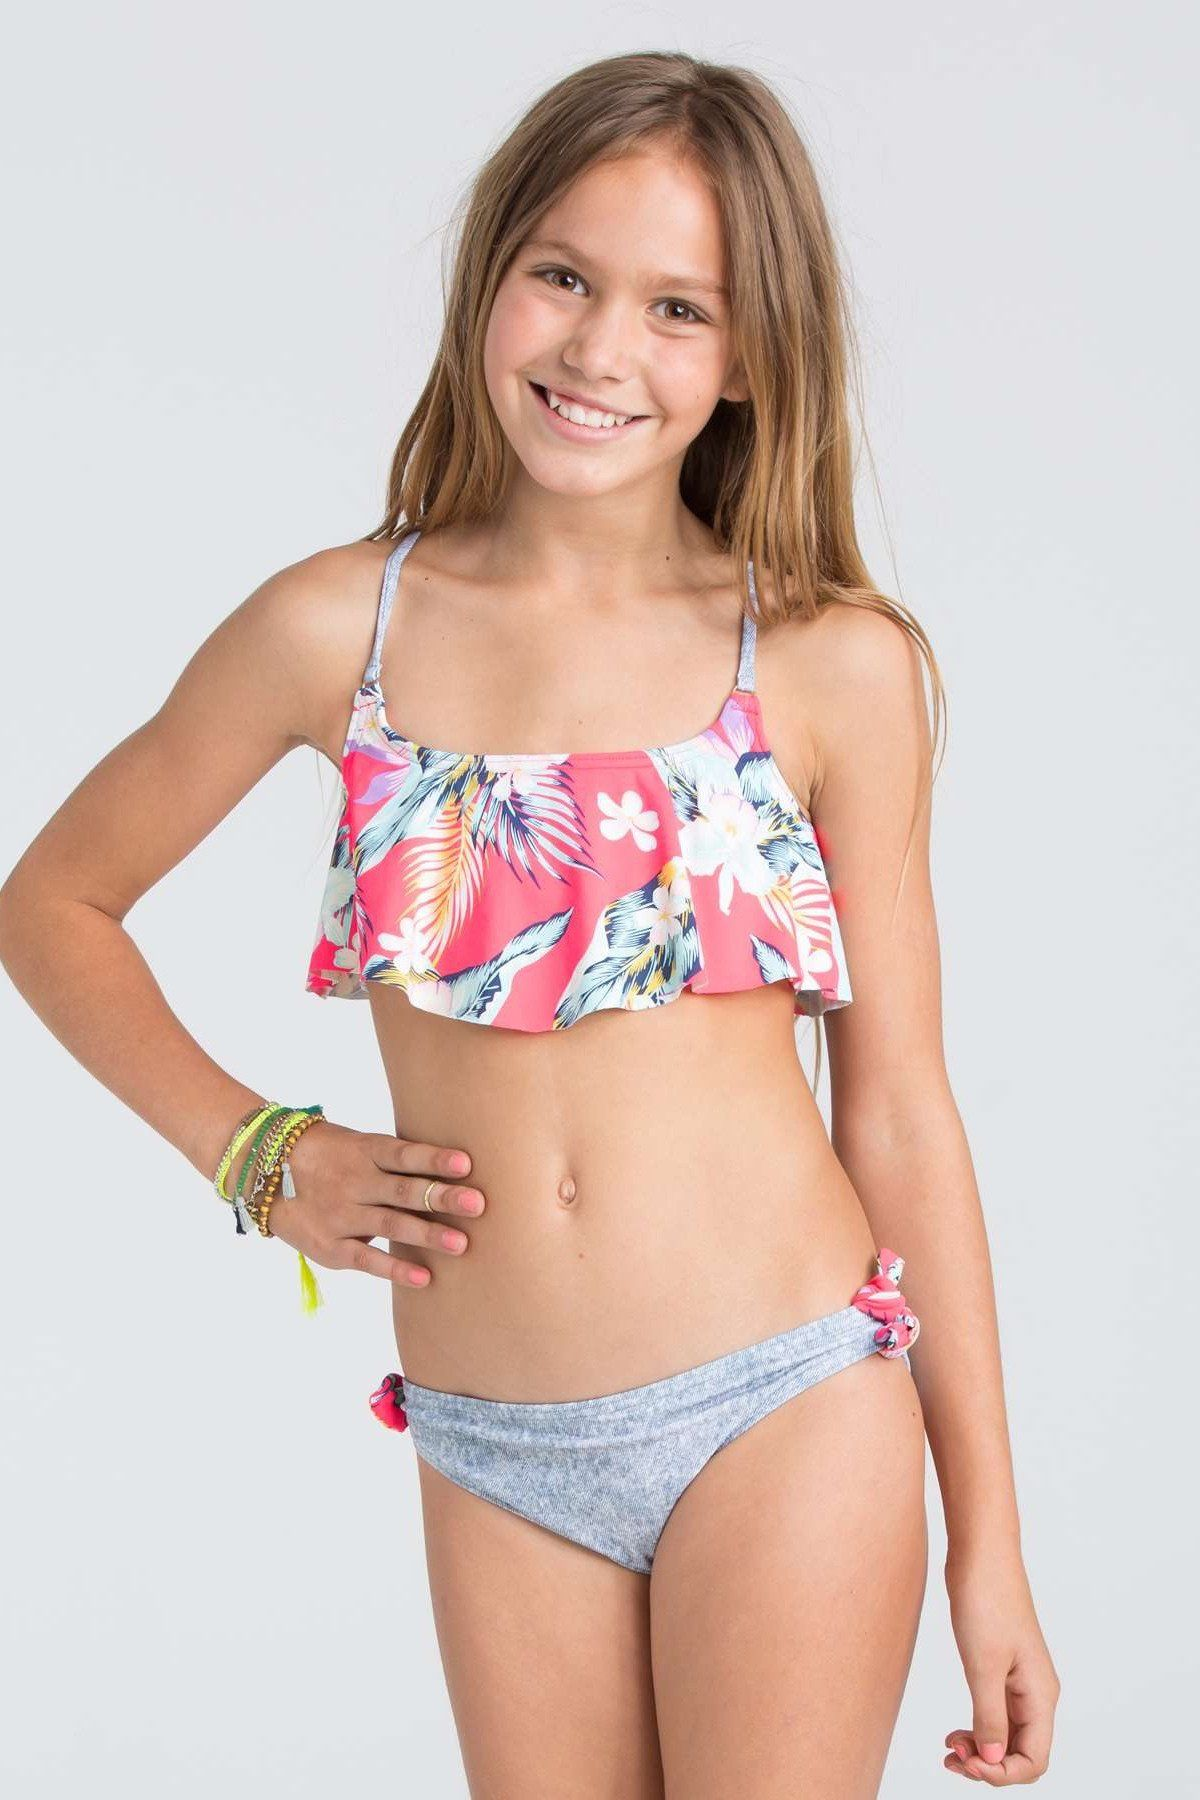 2525069be2944 Own your free spirit in this Aloha print bikini. A flounce top gives this  functional top a dash of feminine style. - Girls bikini.